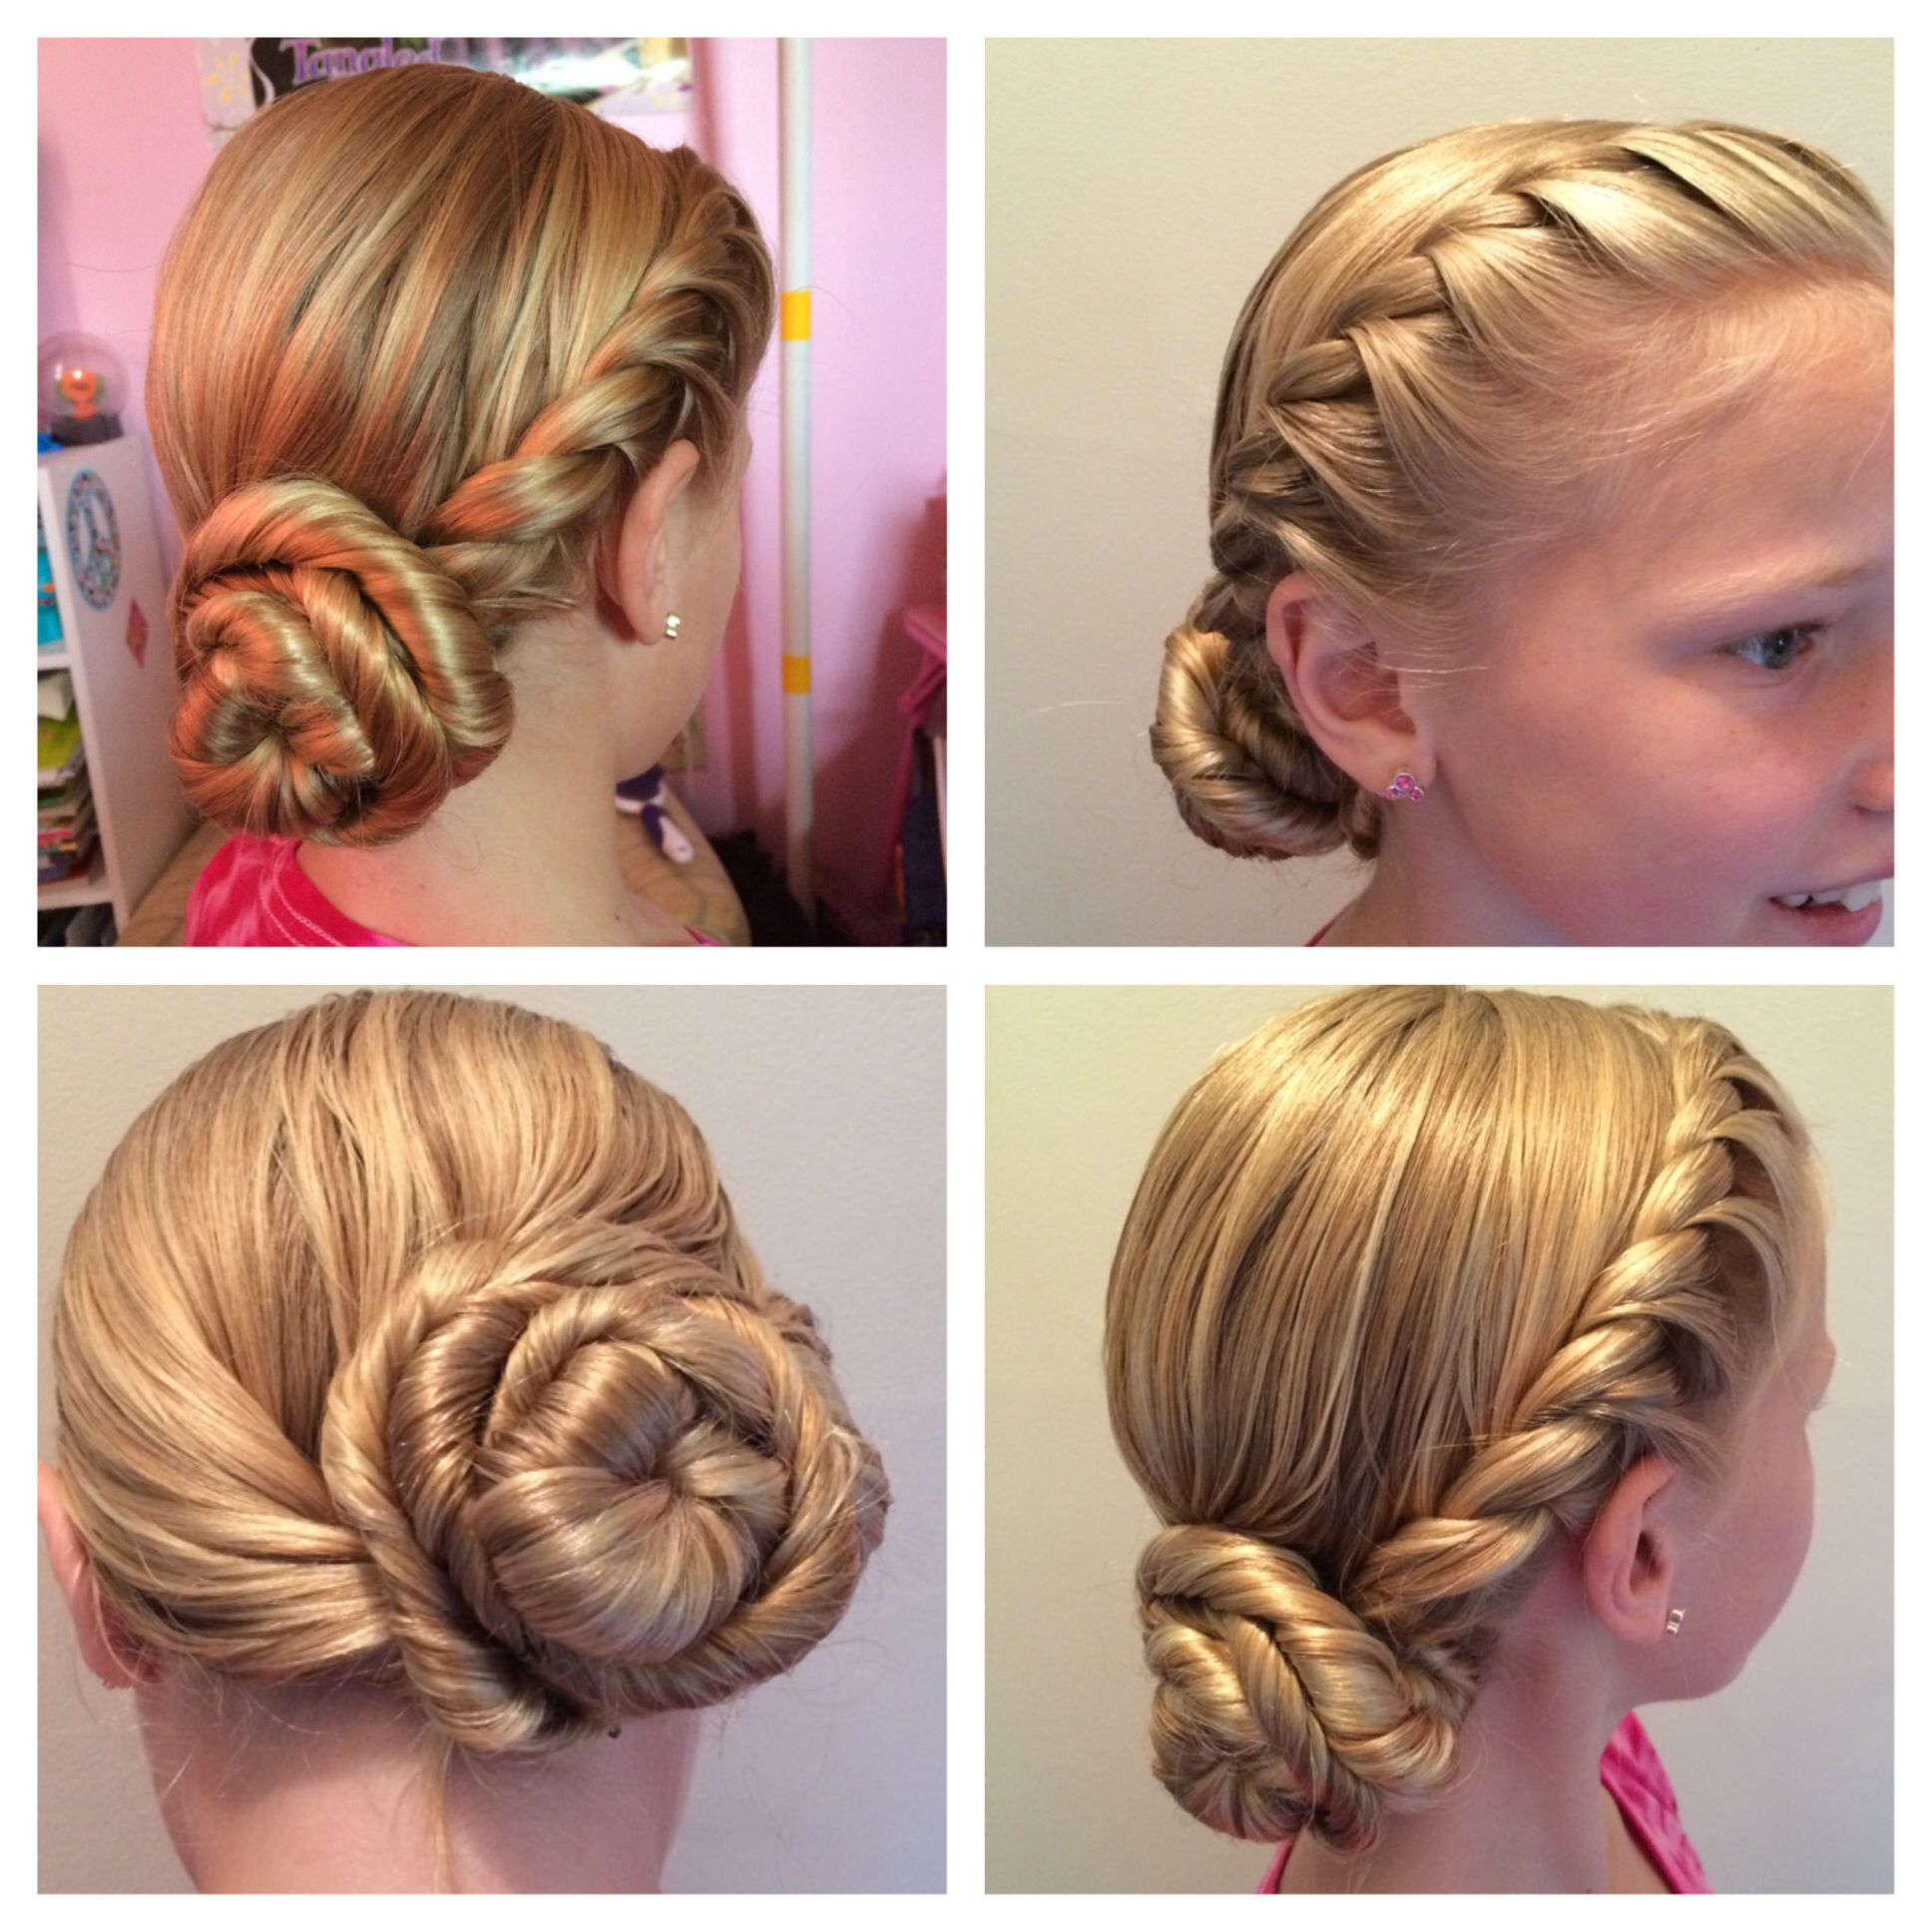 Elsa S Coronation Hairstyle From The Movie Frozen Hair Styles Girl Hairstyles Frozen Hair